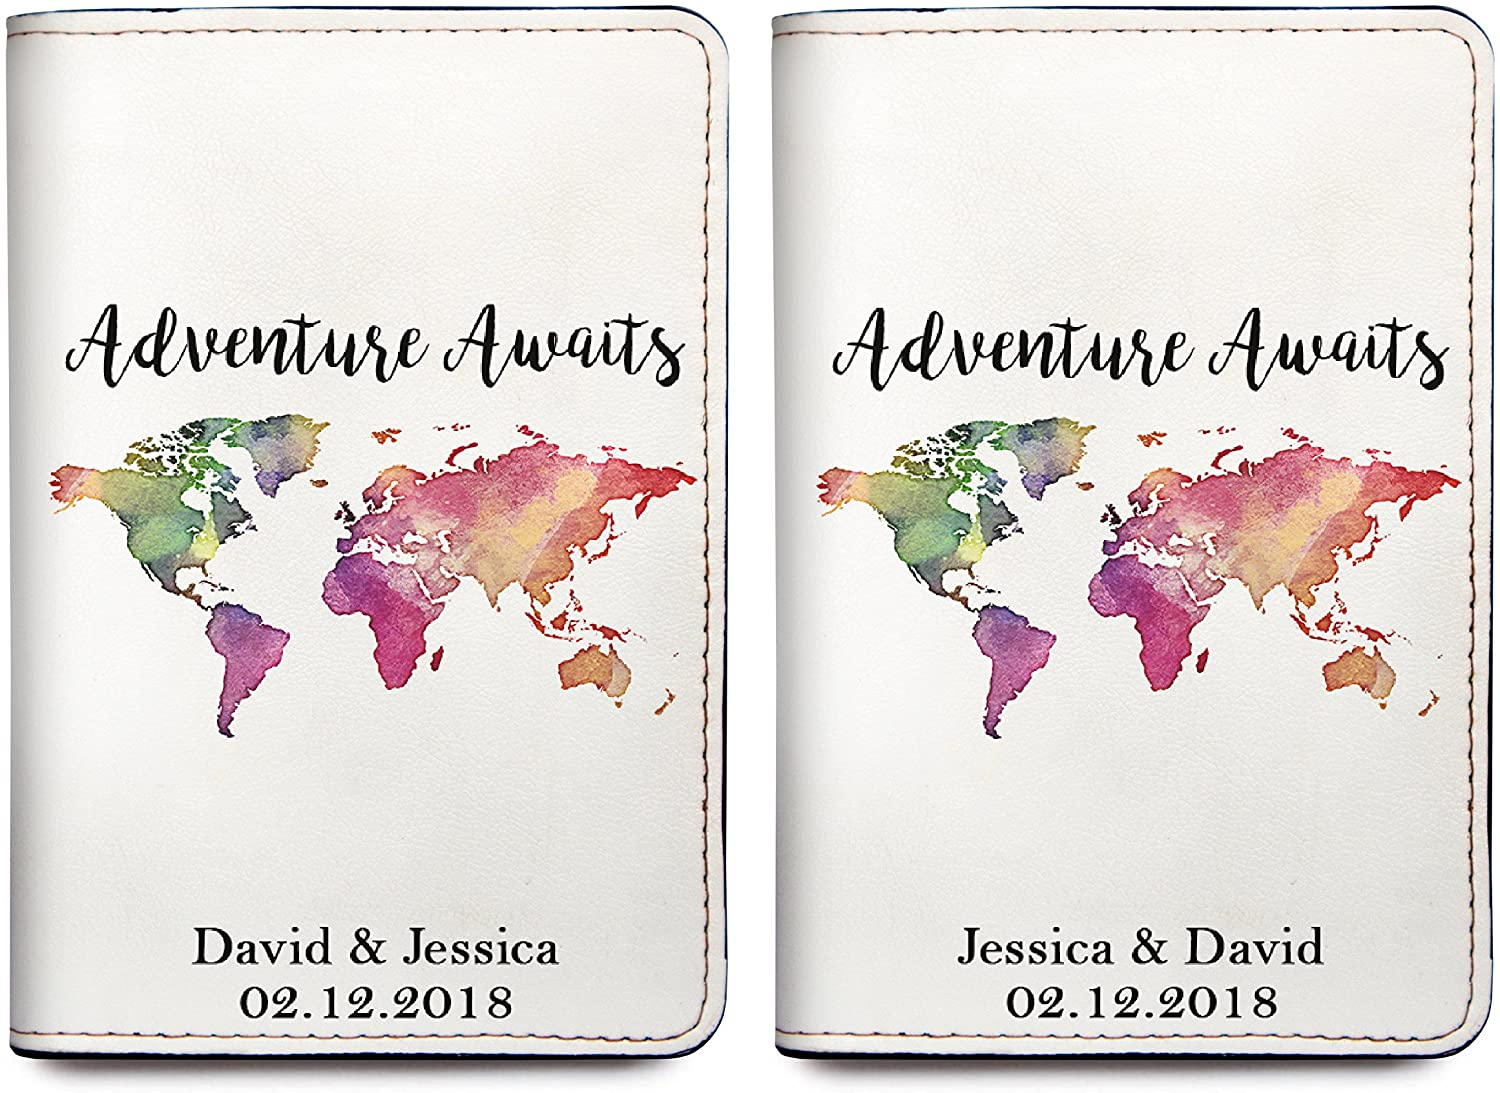 Adventure Awaits - Personalized RFID Passport Holder Cover - Set of 2